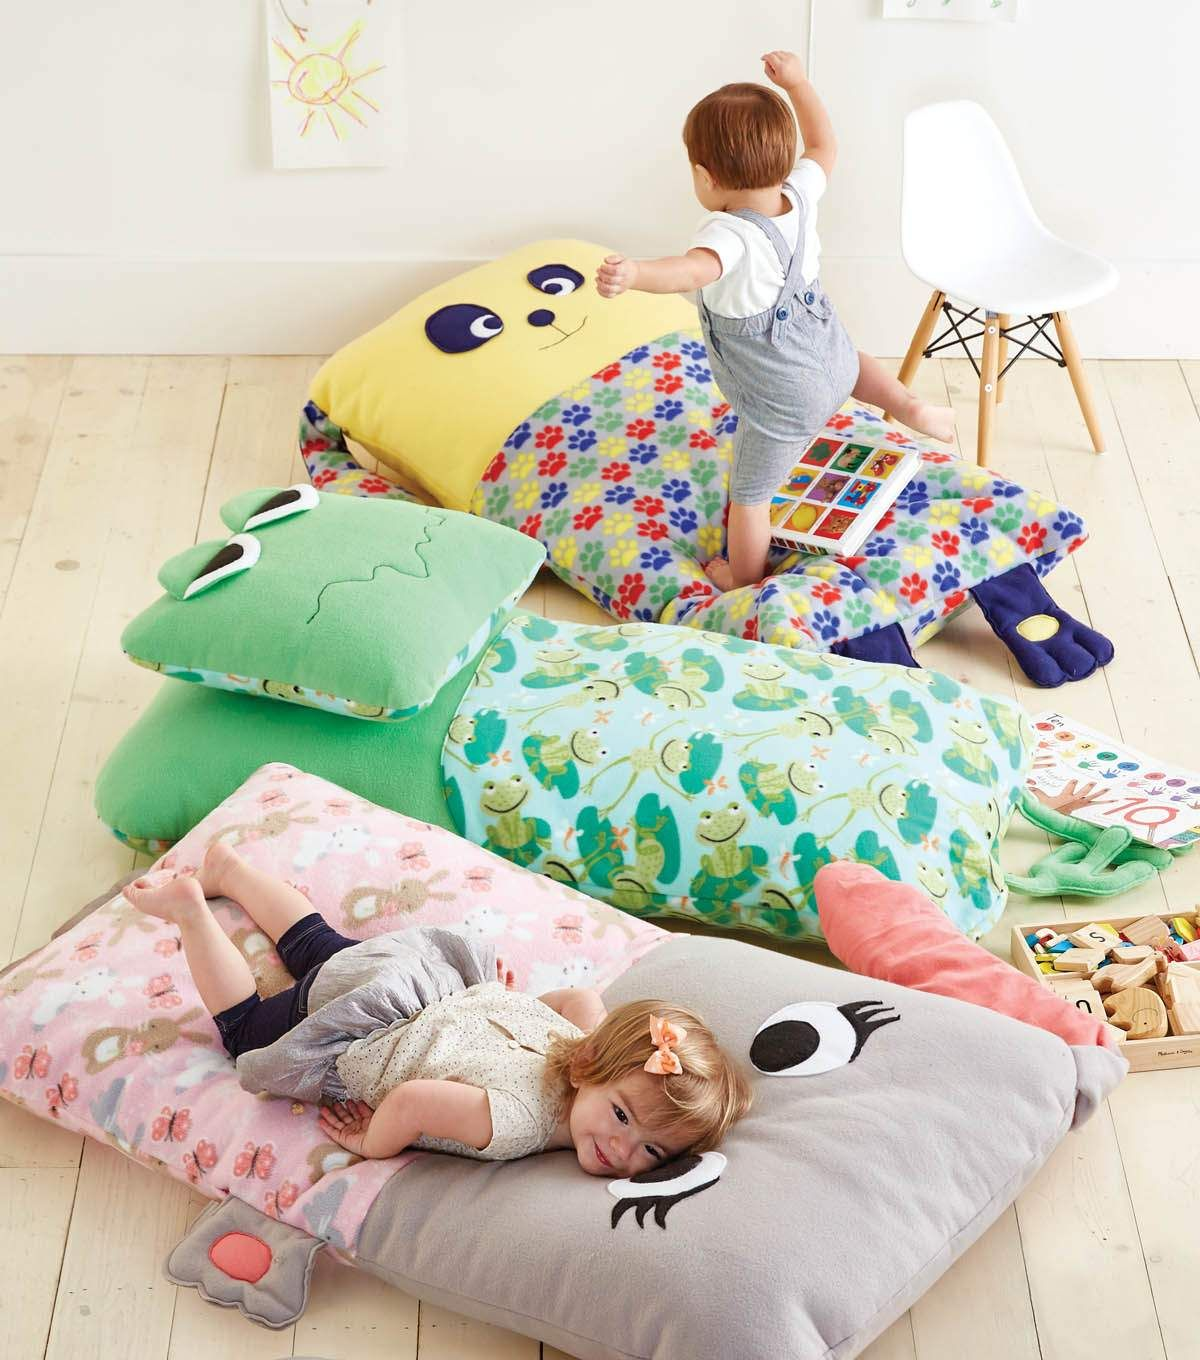 Bodenkissen Kinderzimmer How To Sew A Child Floor Pillow Baby Kinder Manualidades